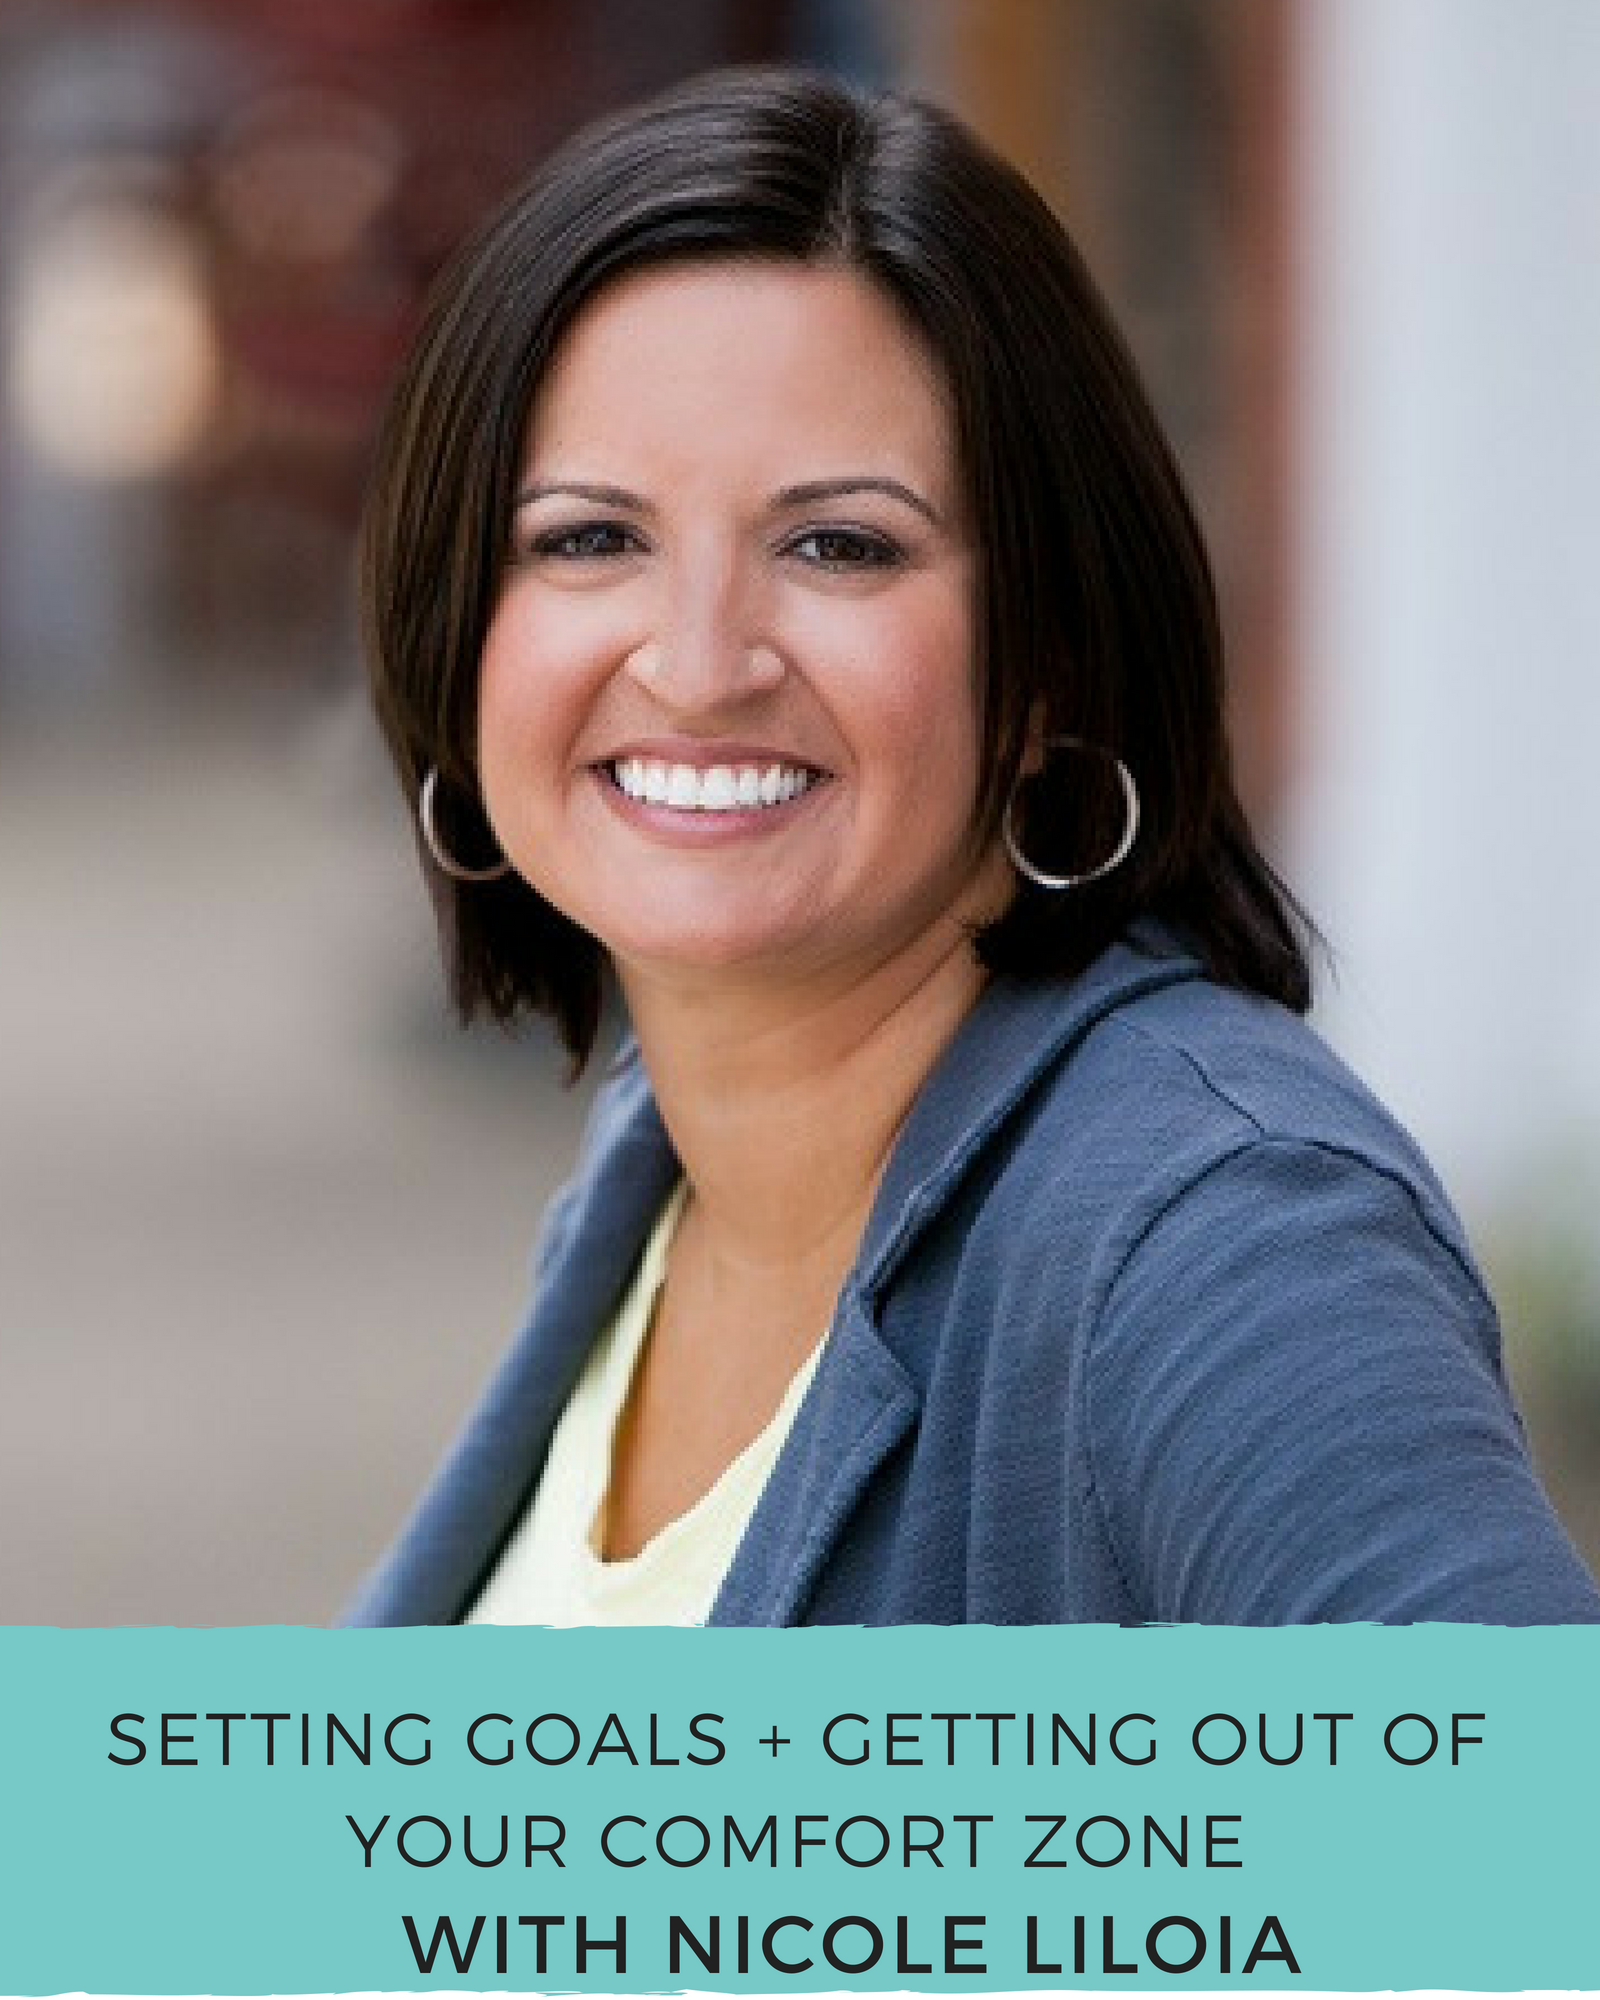 setting-goals-getting-out-of-your-comfort-zone-with-nicole-liloia-the-couragemakers-podcast.png